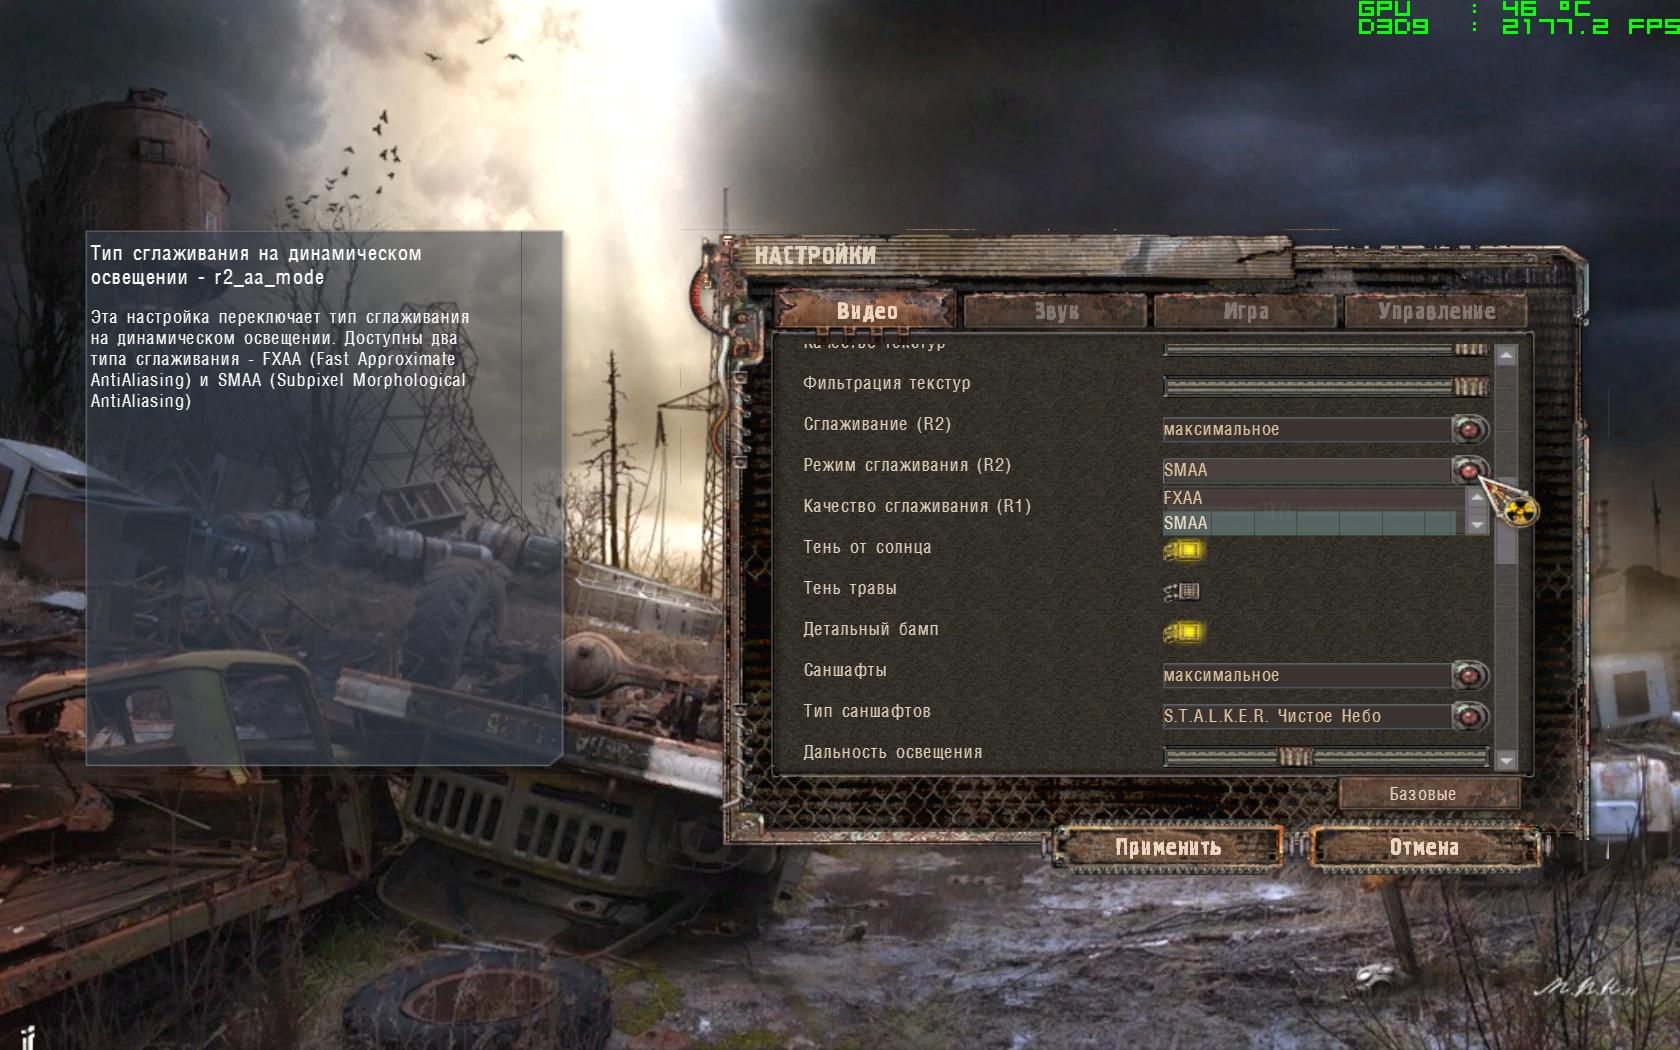 OGSE advanced graphics settings with hints